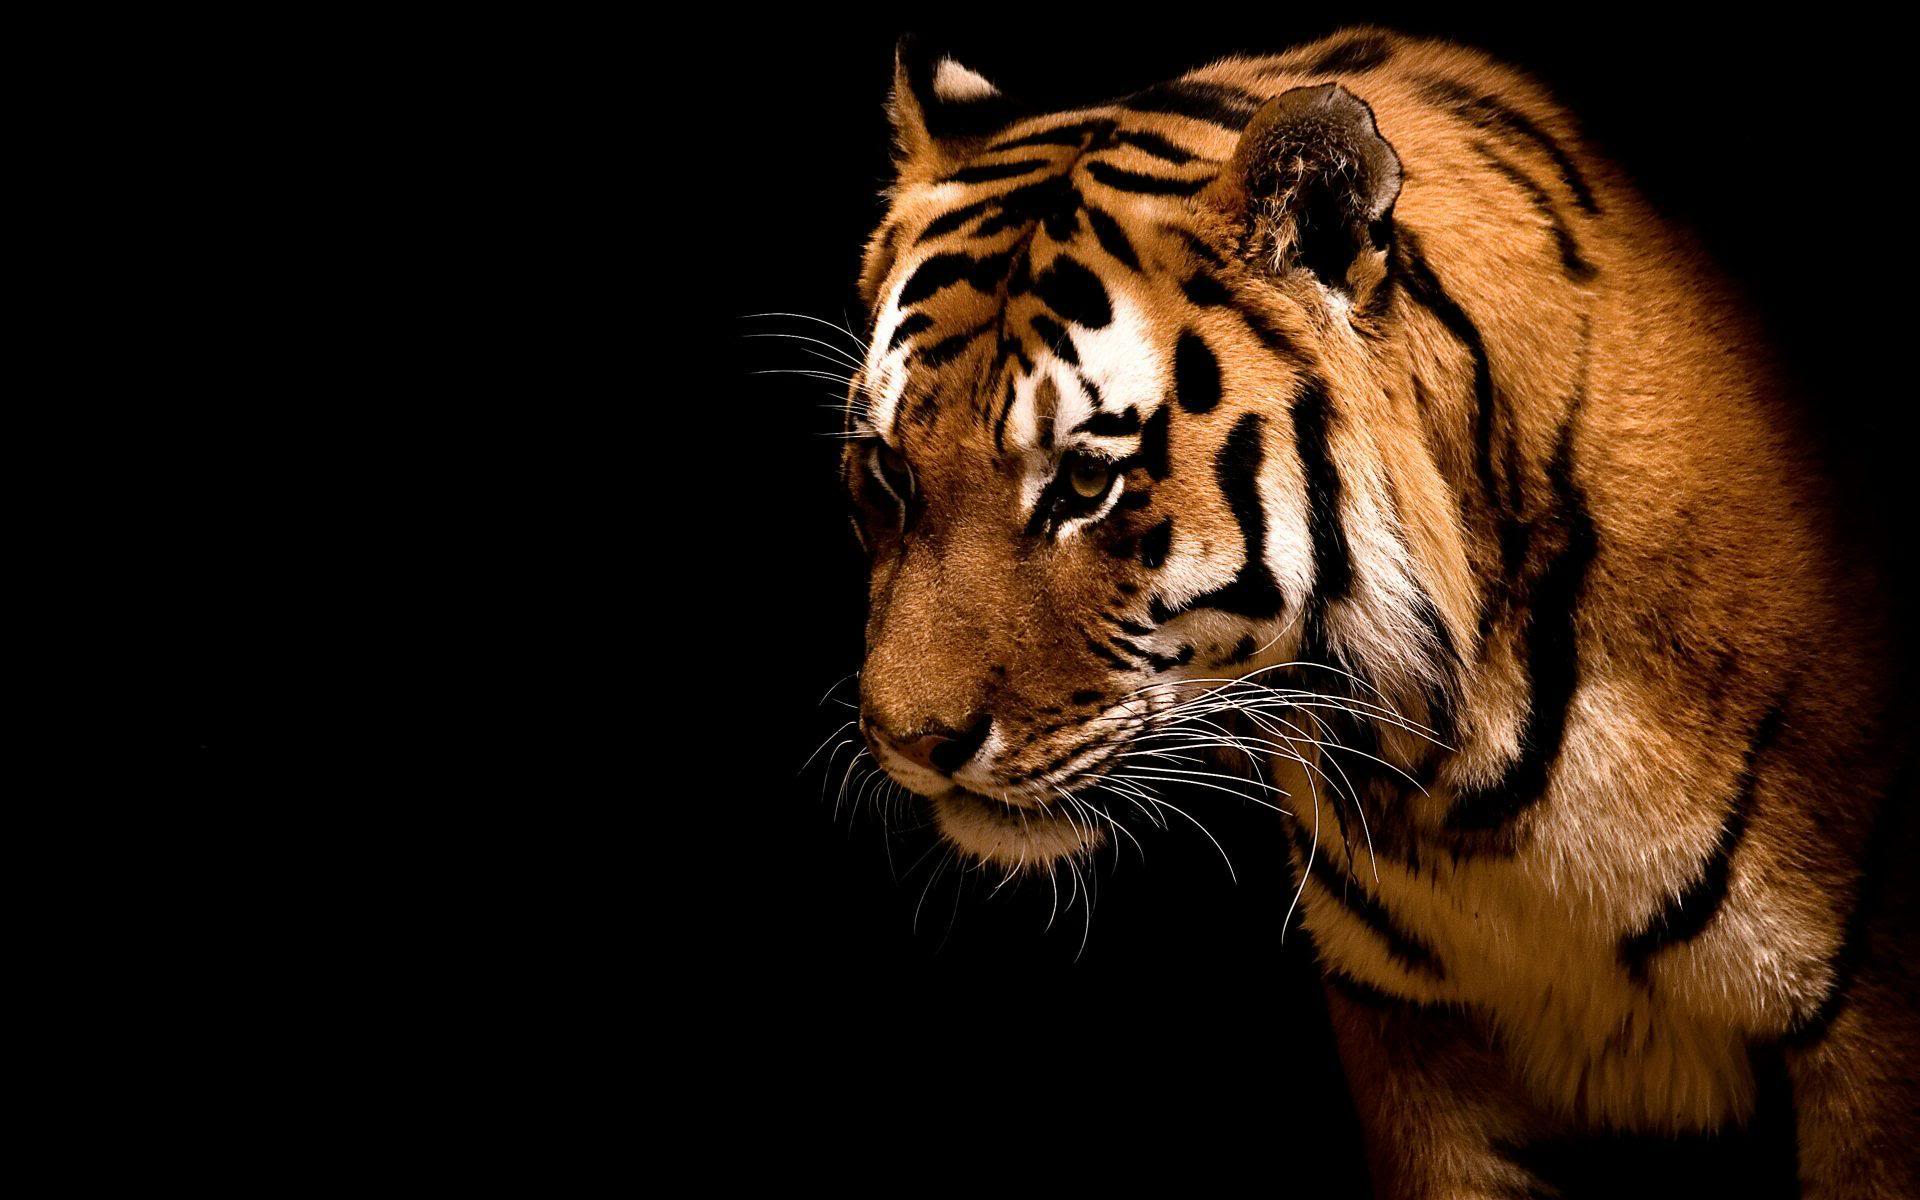 Free Download Wallpapers Website Background Hd X Animals Tiger In